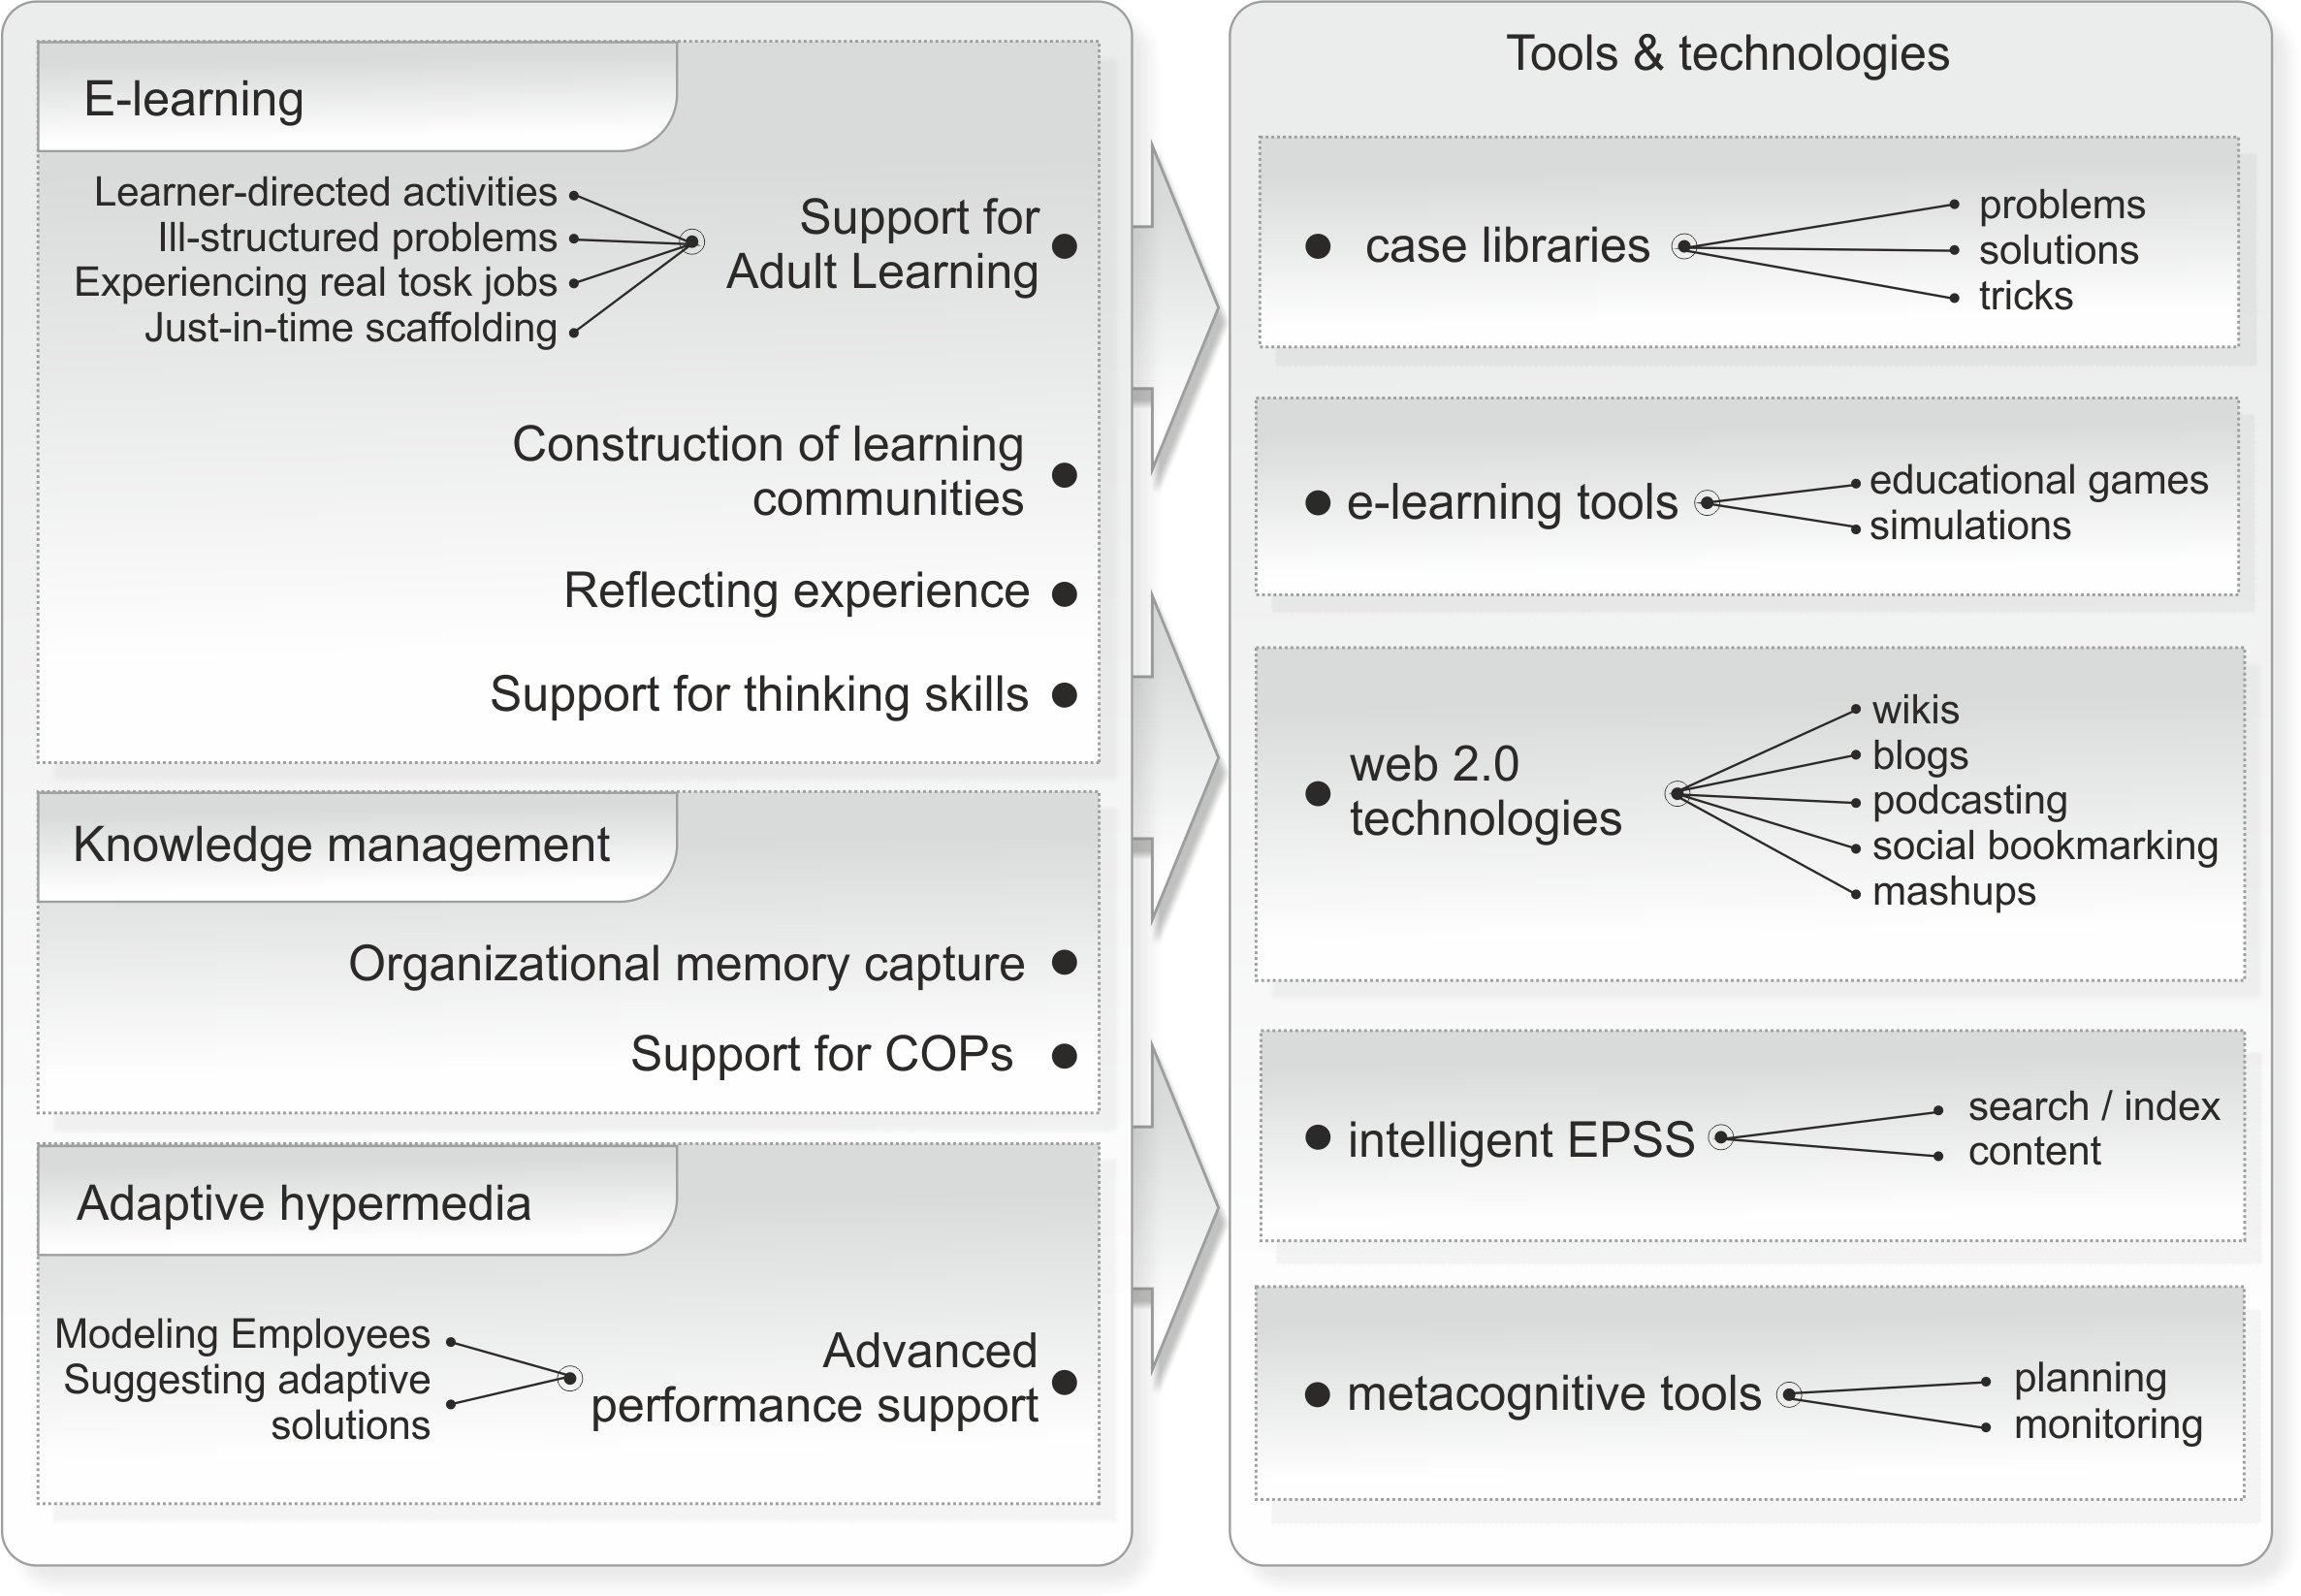 Figure 1. An interactive learning environment model for the workplace (Somyürek, 2012)